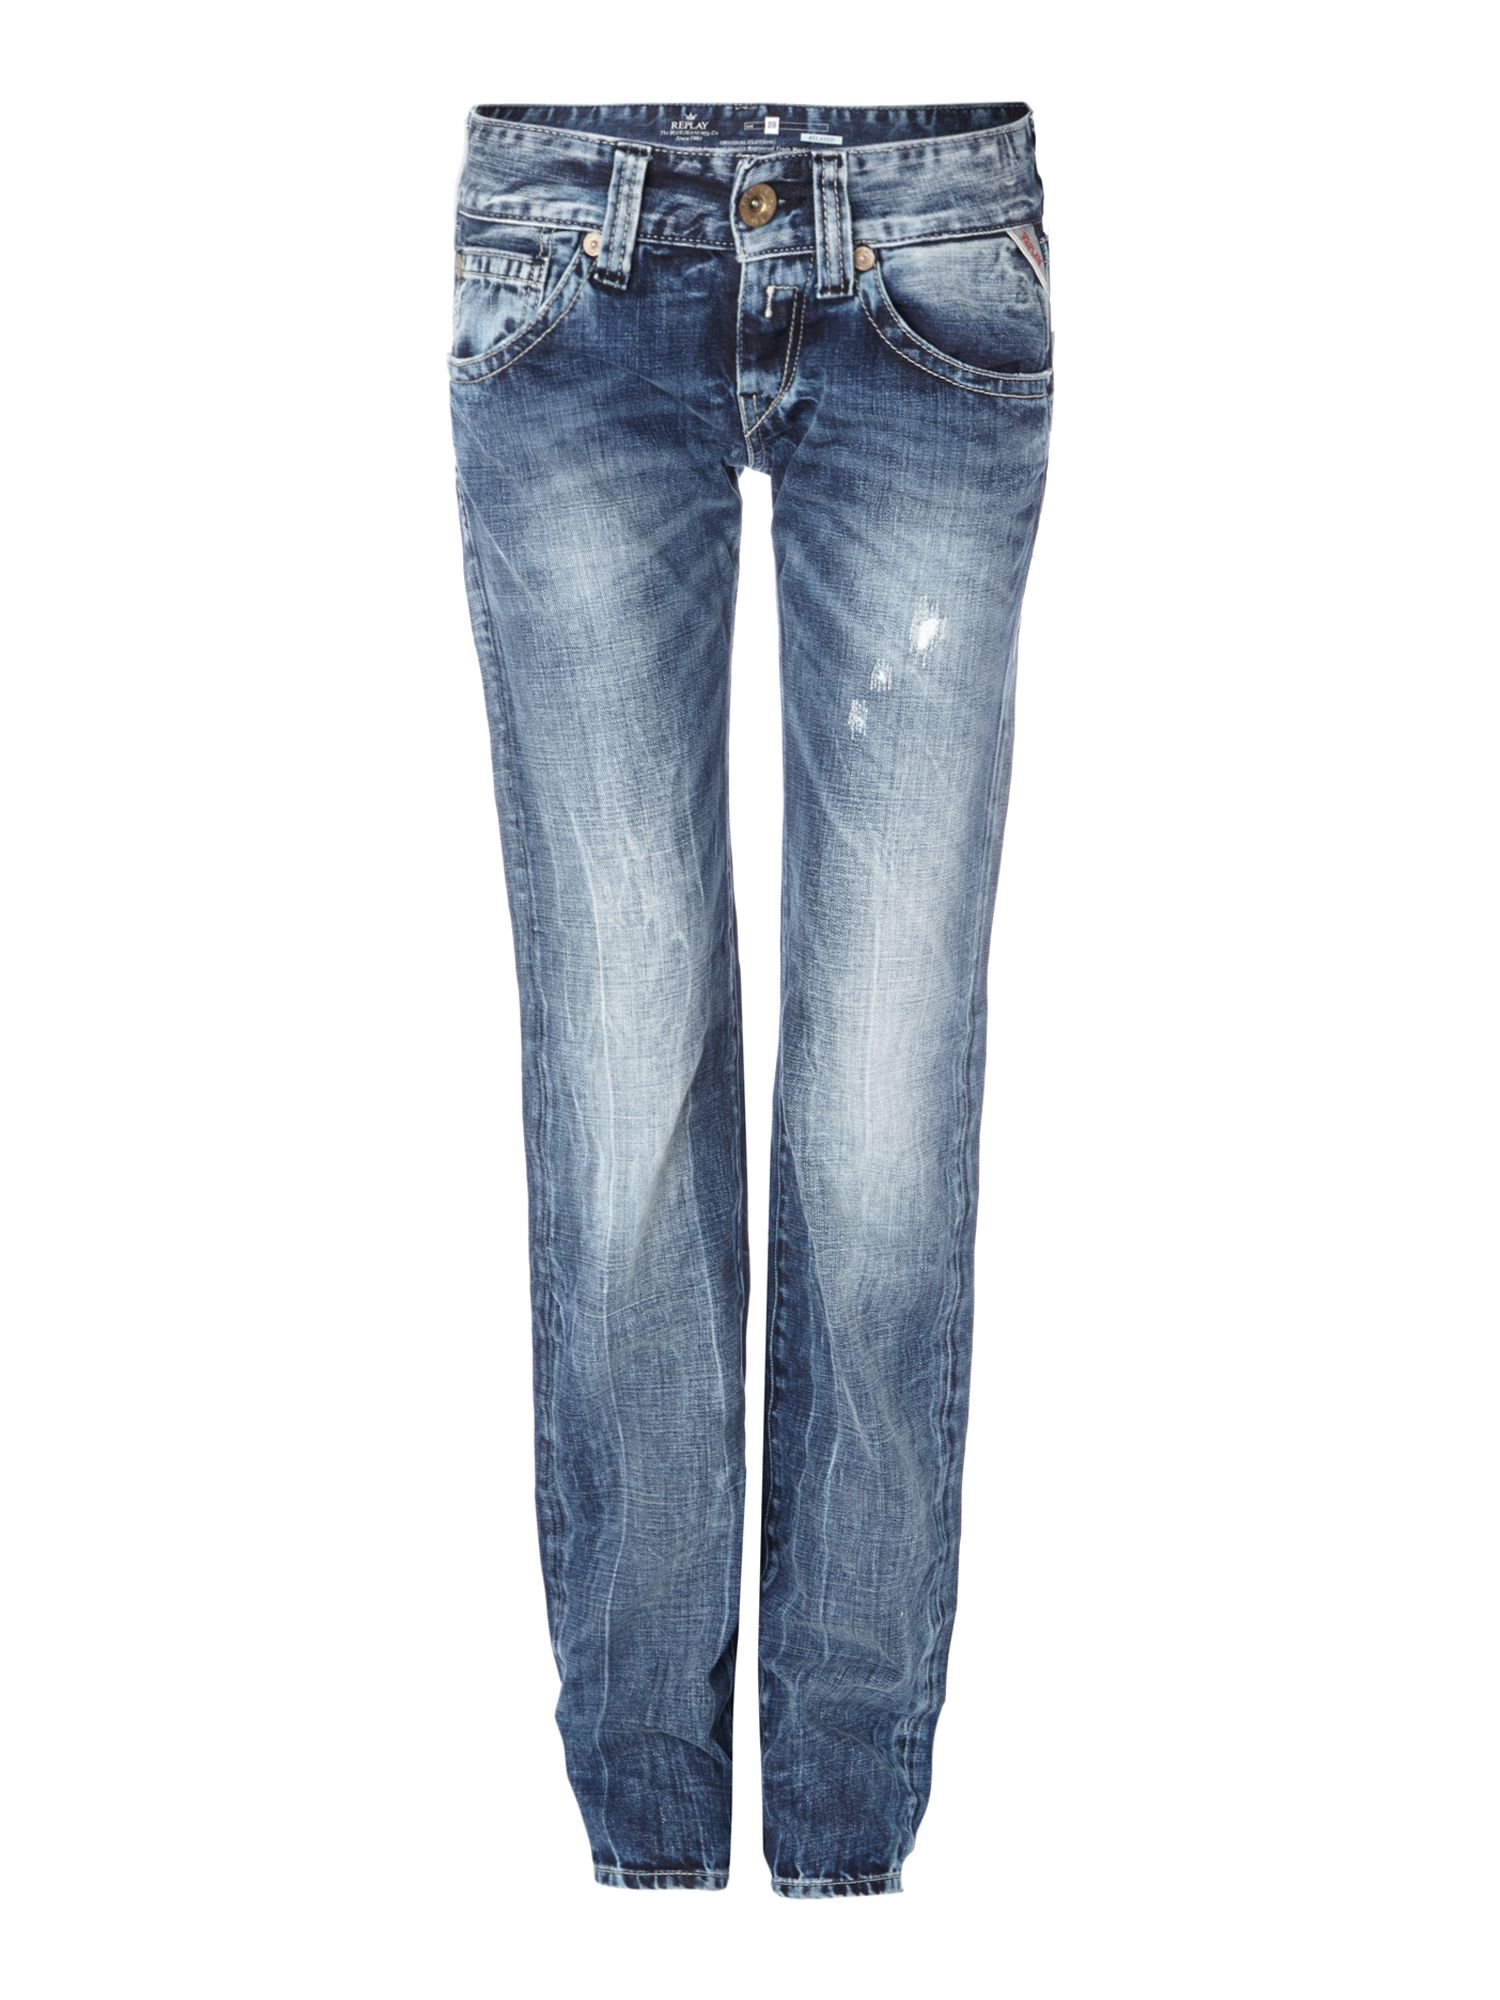 New swenfani comfortable fit jean